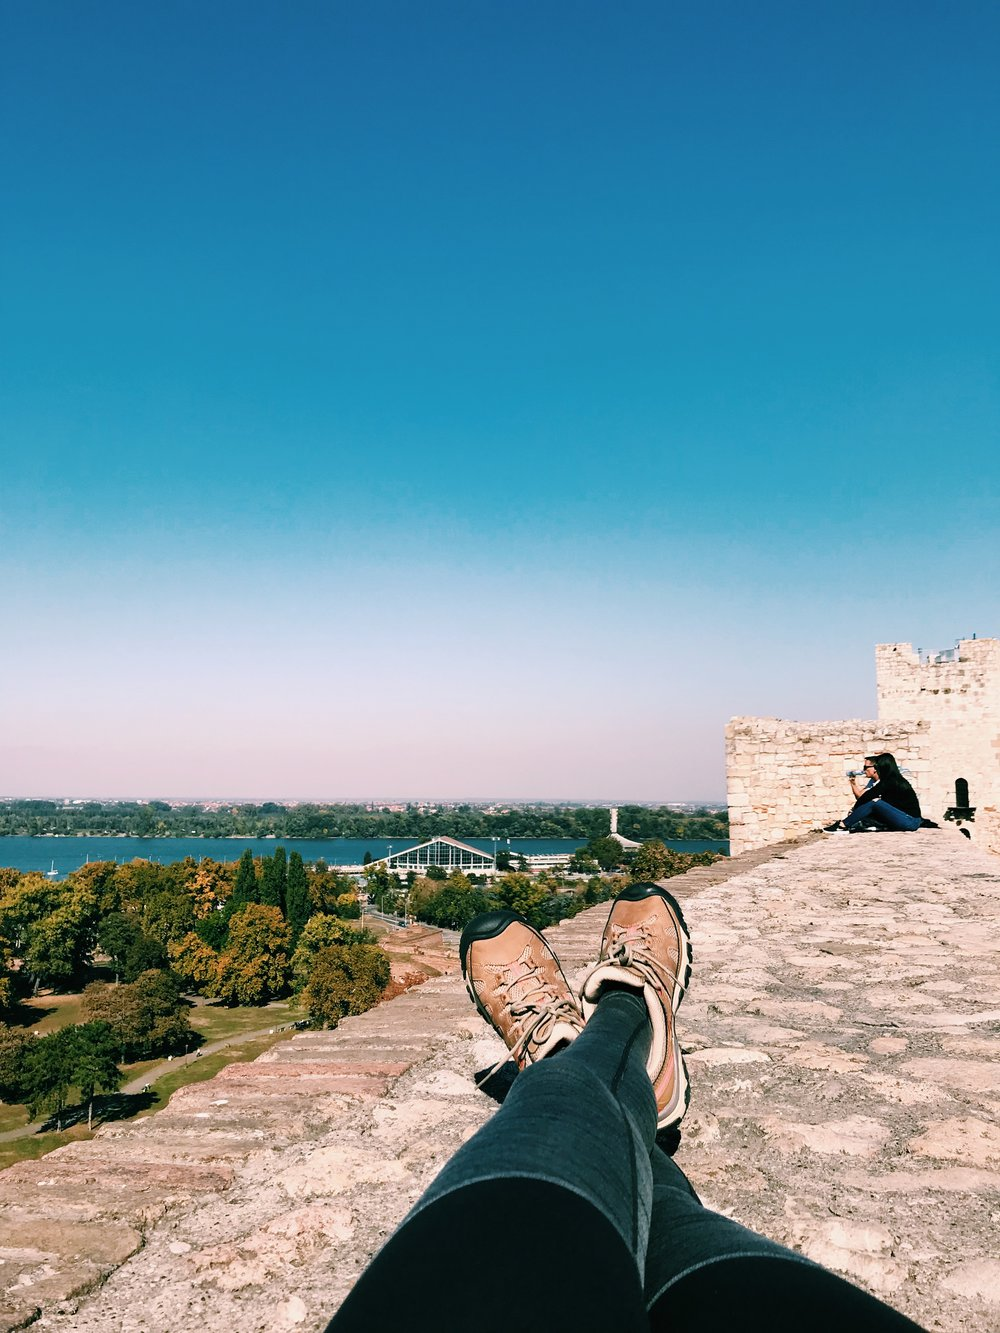 took a walk down to the  Danube River  and took a nap along the ancient fortress walls. so eastern euro bum of me I know. :)